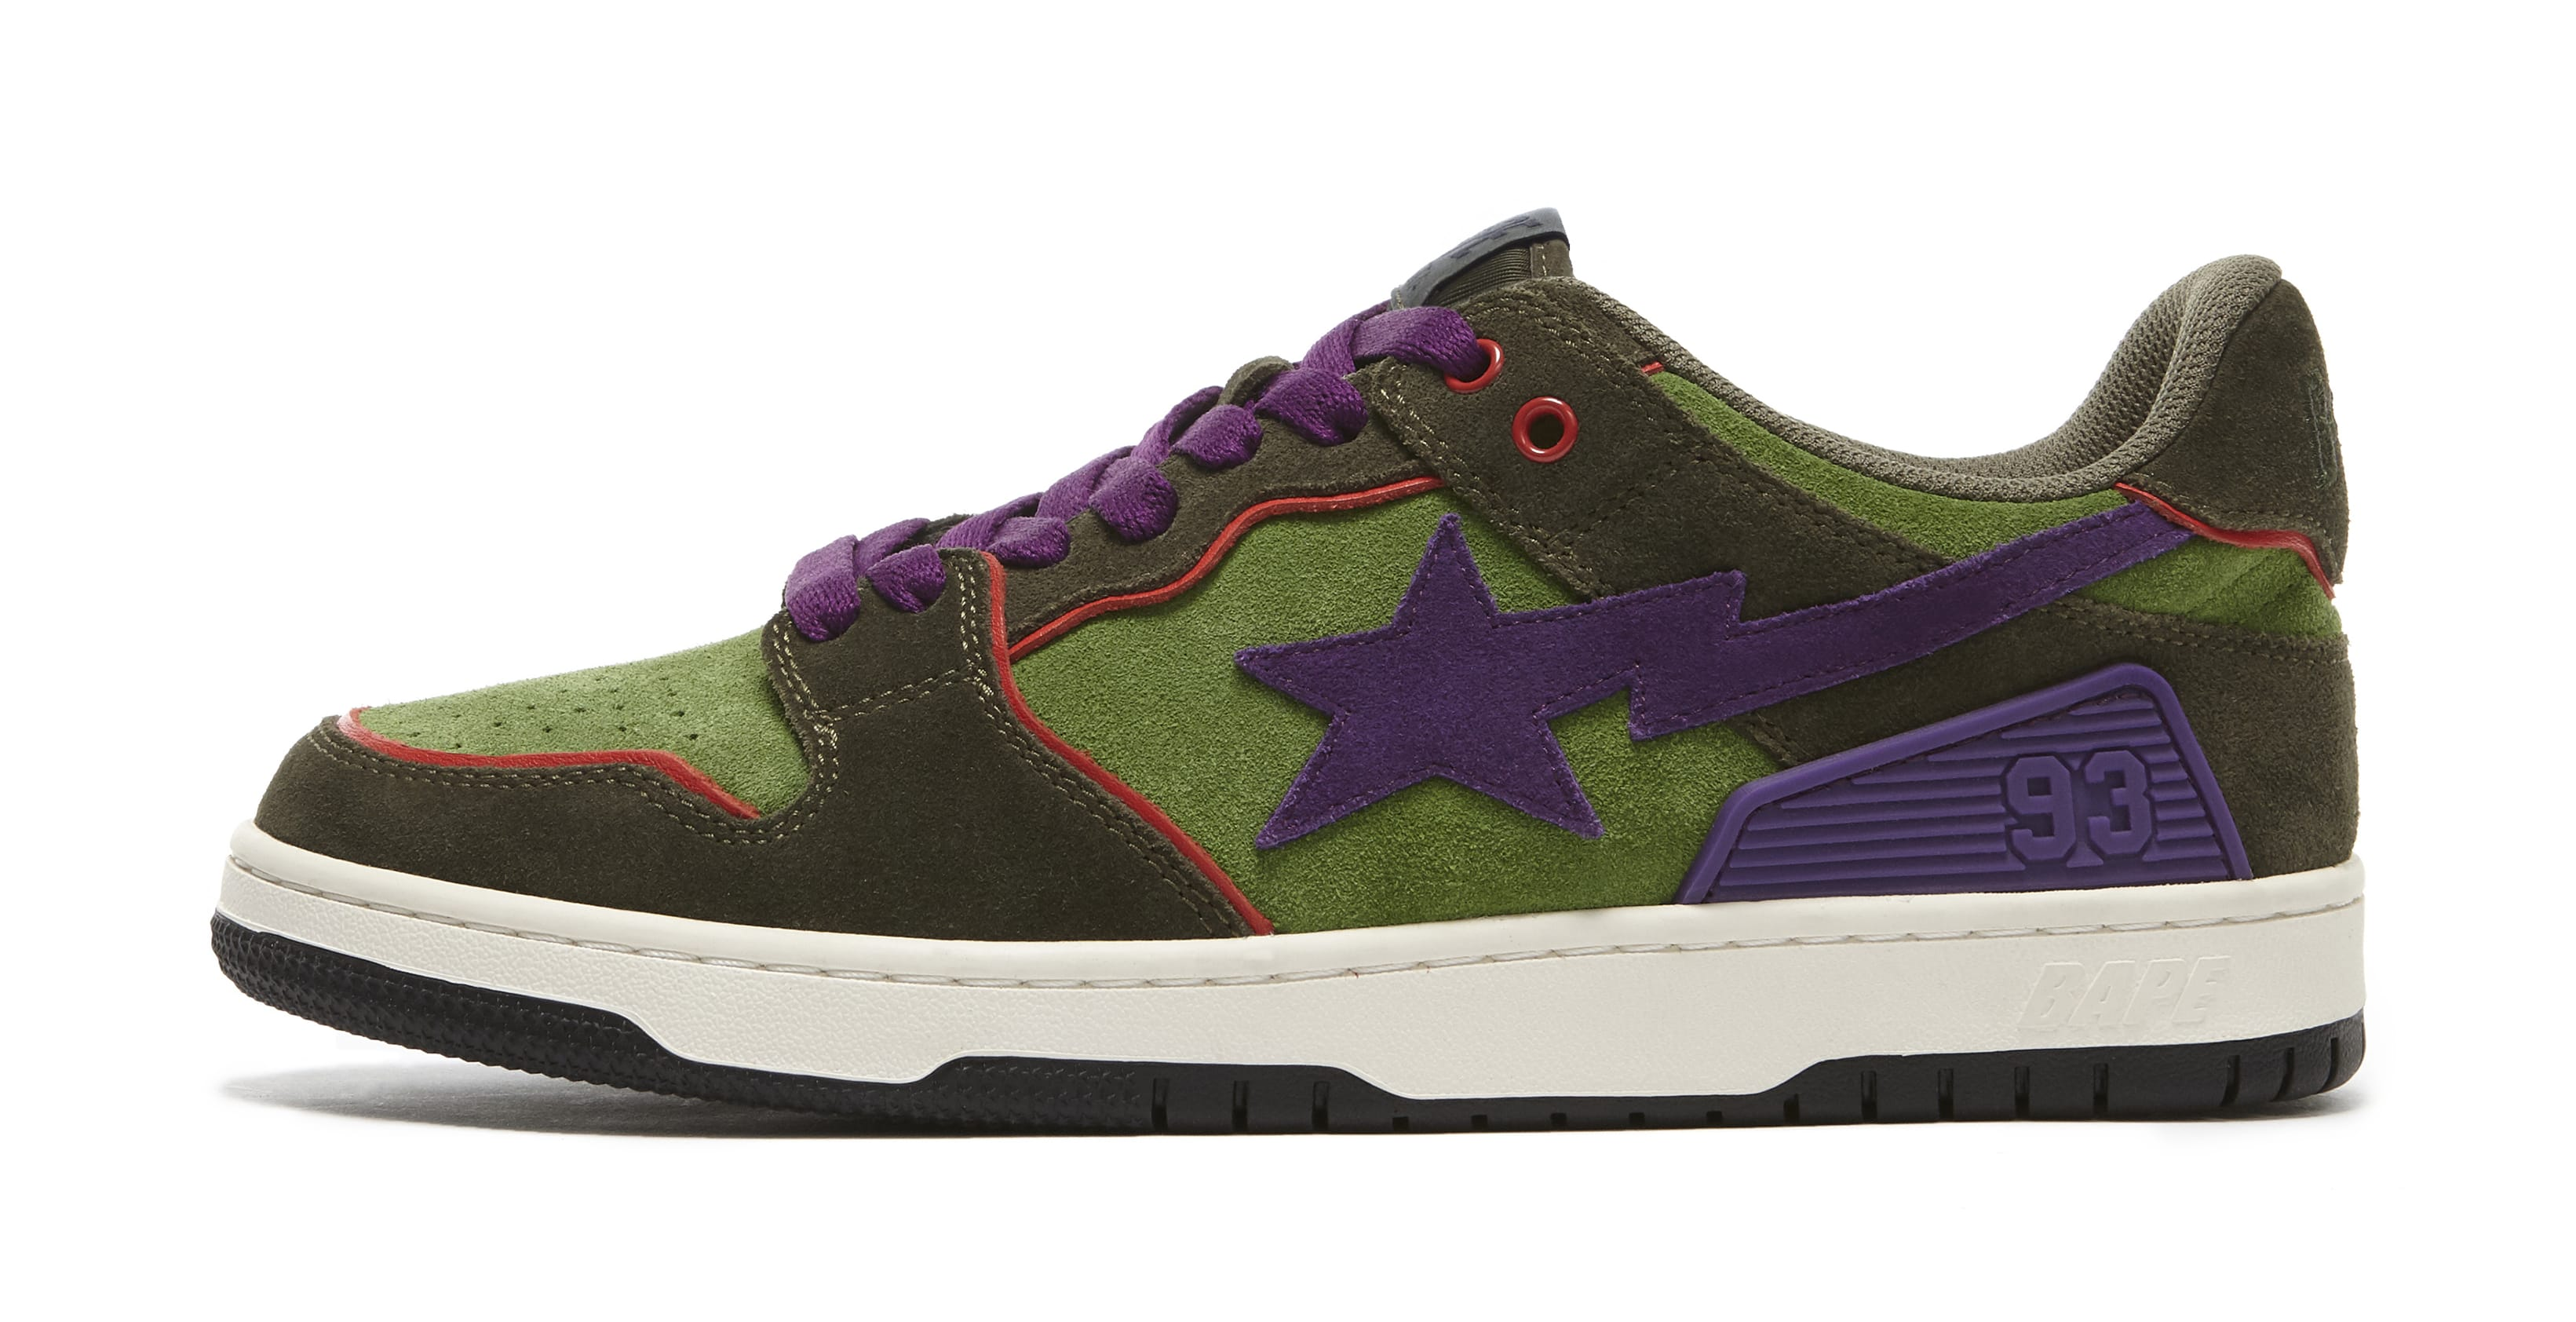 Bape Sk8 Sta Dark Purple and Green Lateral